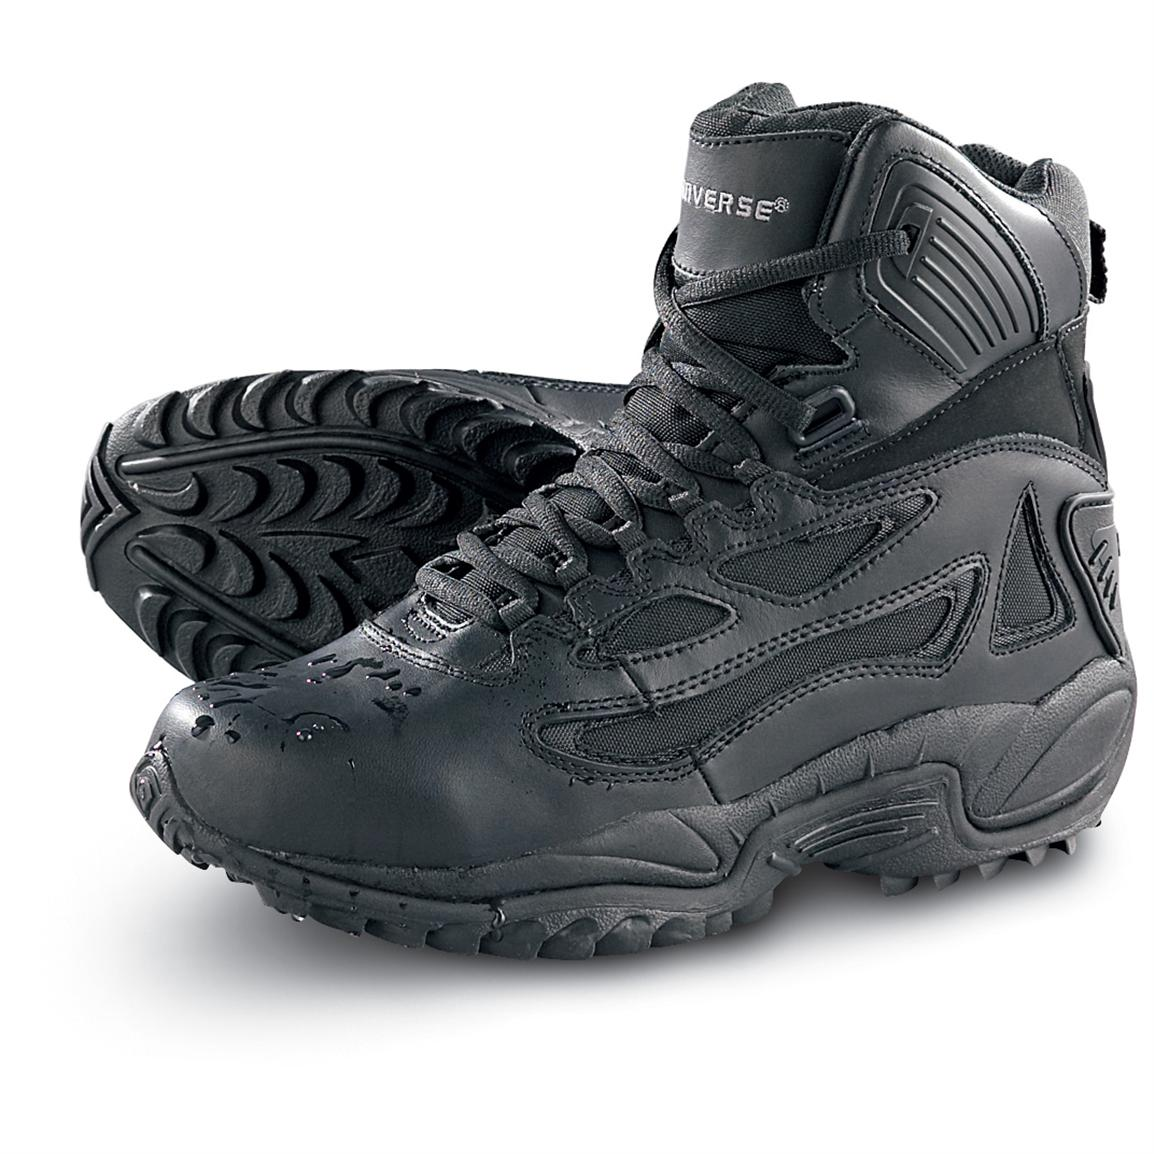 Mens Water Proof Sports Shoes